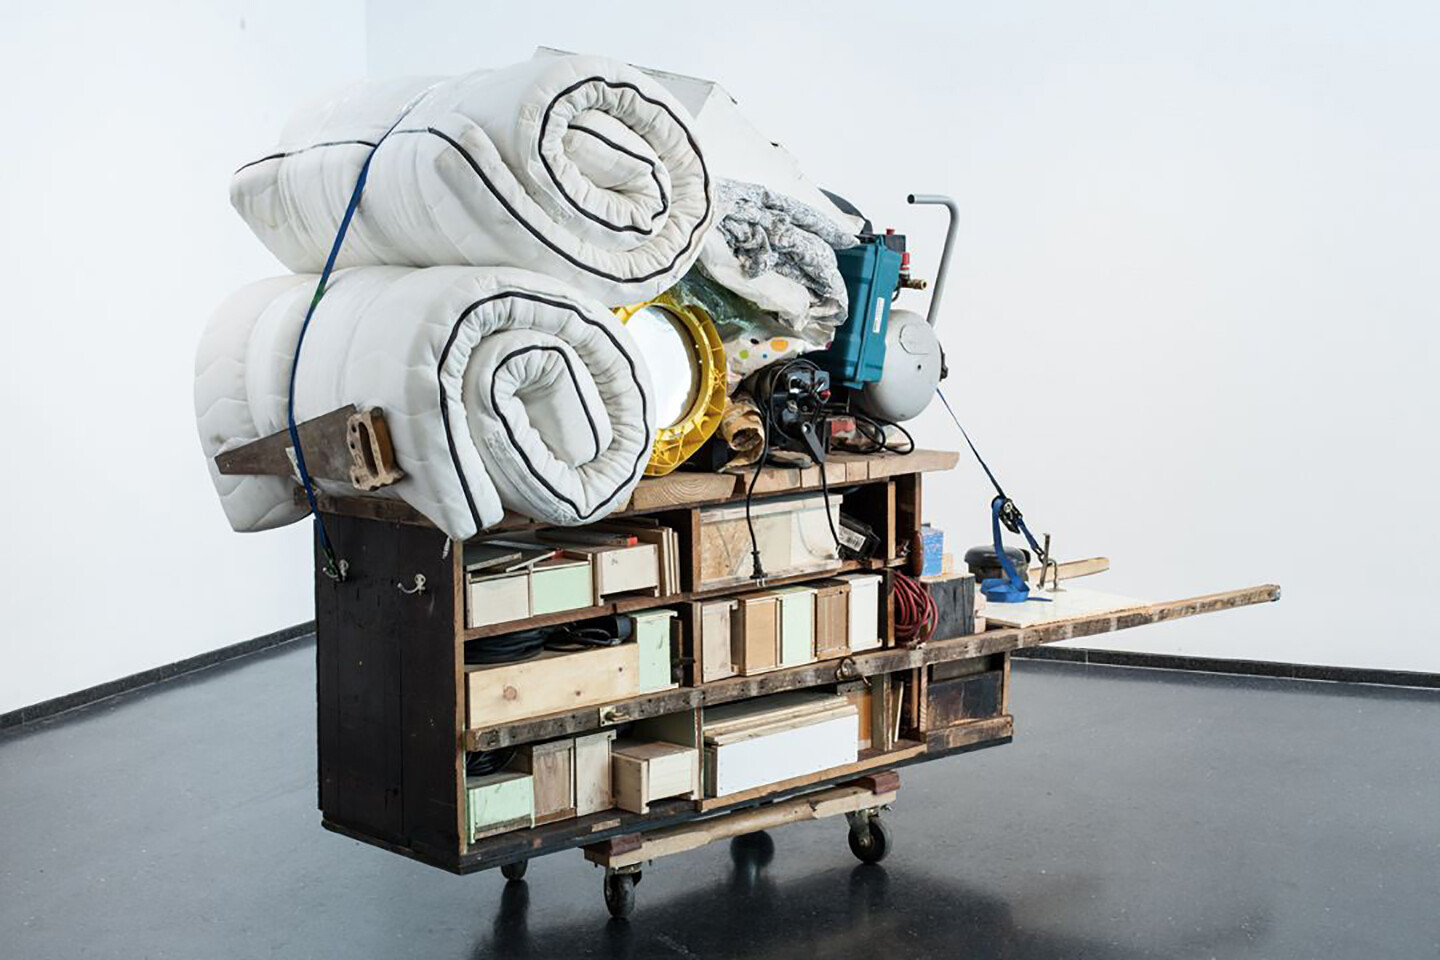 Theater Gates, Migration Rickshaw for Sleeping, Playing, and Building,  2013. Wood, fabric, metal, plastic, Huguenot House remnants, 68 x 104 x 46  inches.